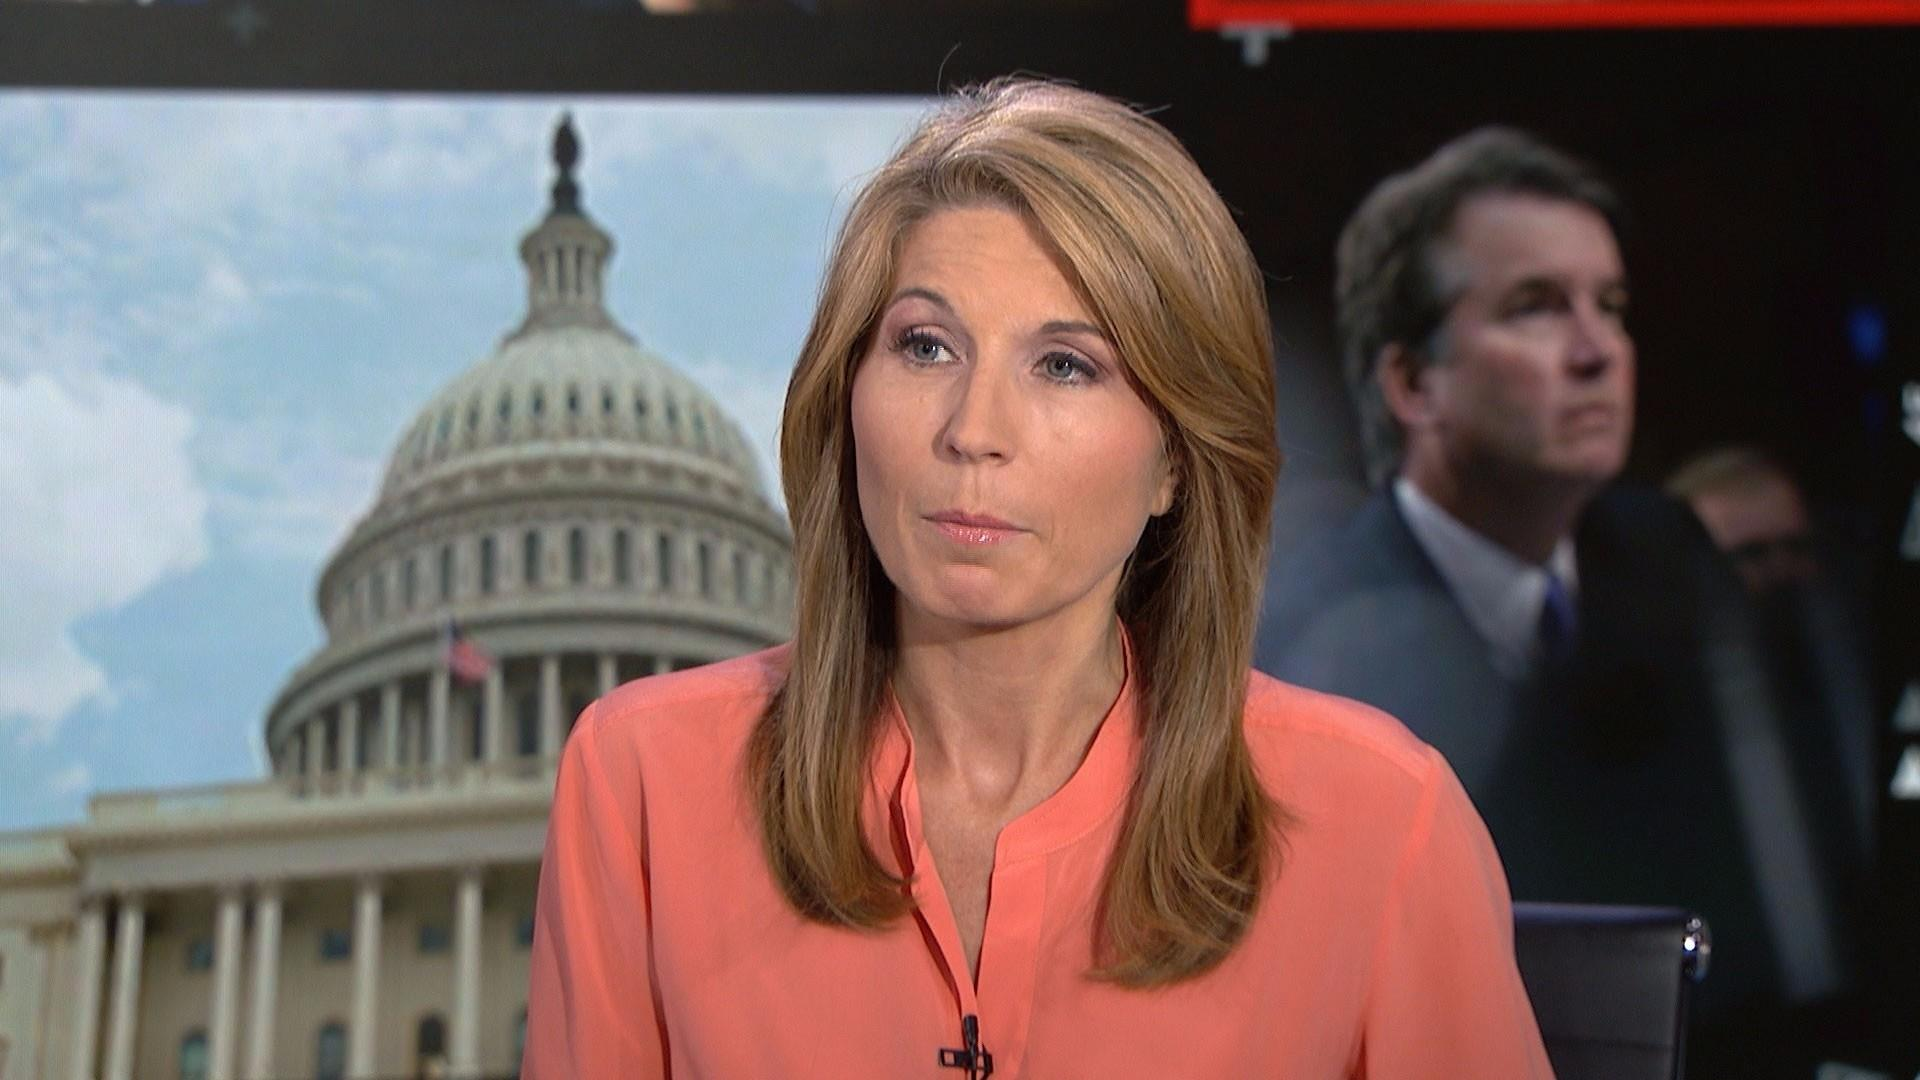 Nicolle Wallace: I think we've seen a lot of human carnage